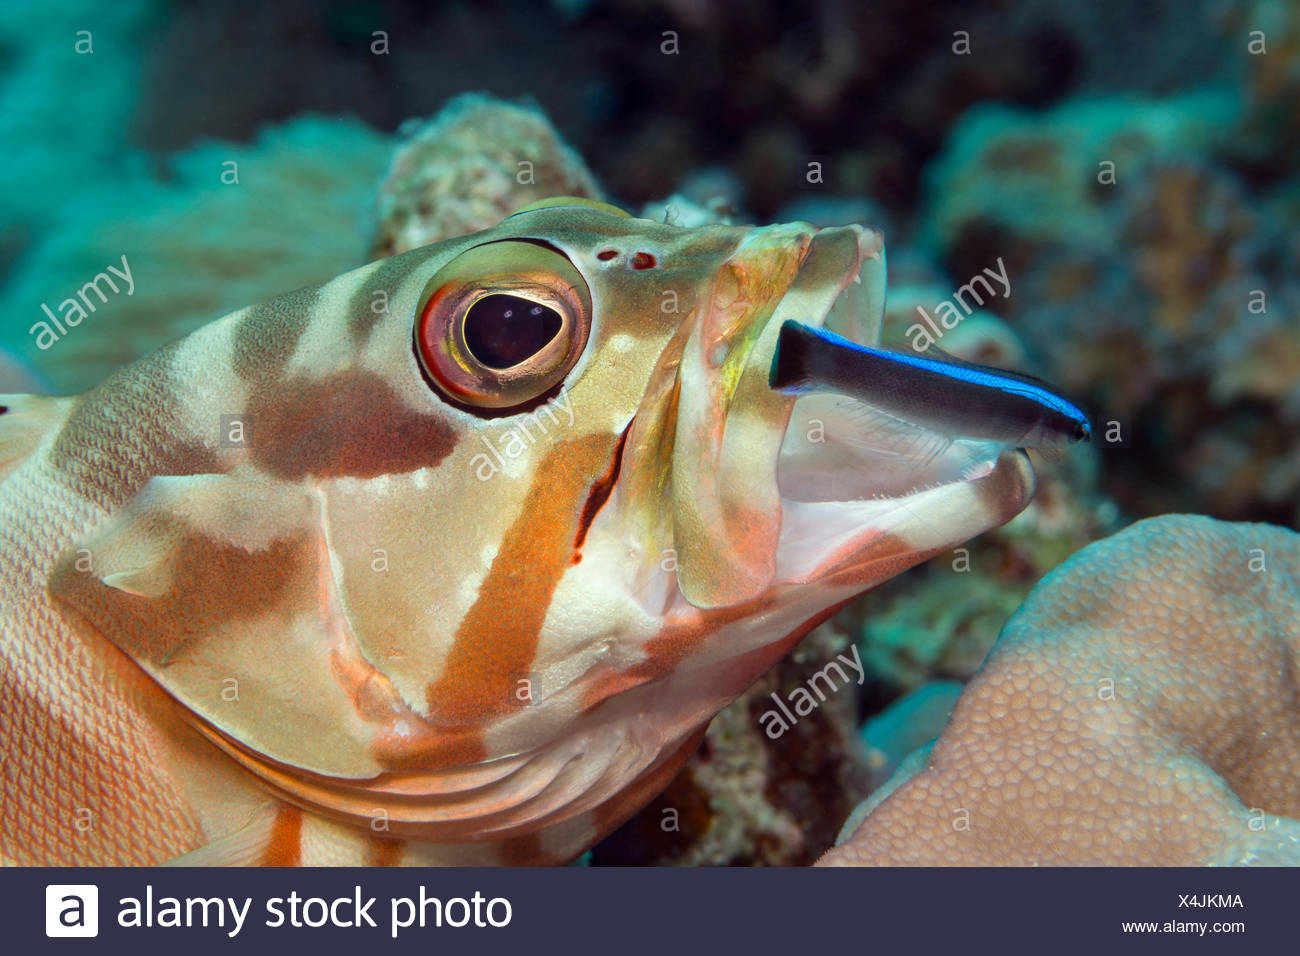 Blacktip Grouper cleaned by Bluestreak Cleaner Wrasse, Epinephelus fasciatus, Marsa Alam, Red Sea, Egypt - Stock Image